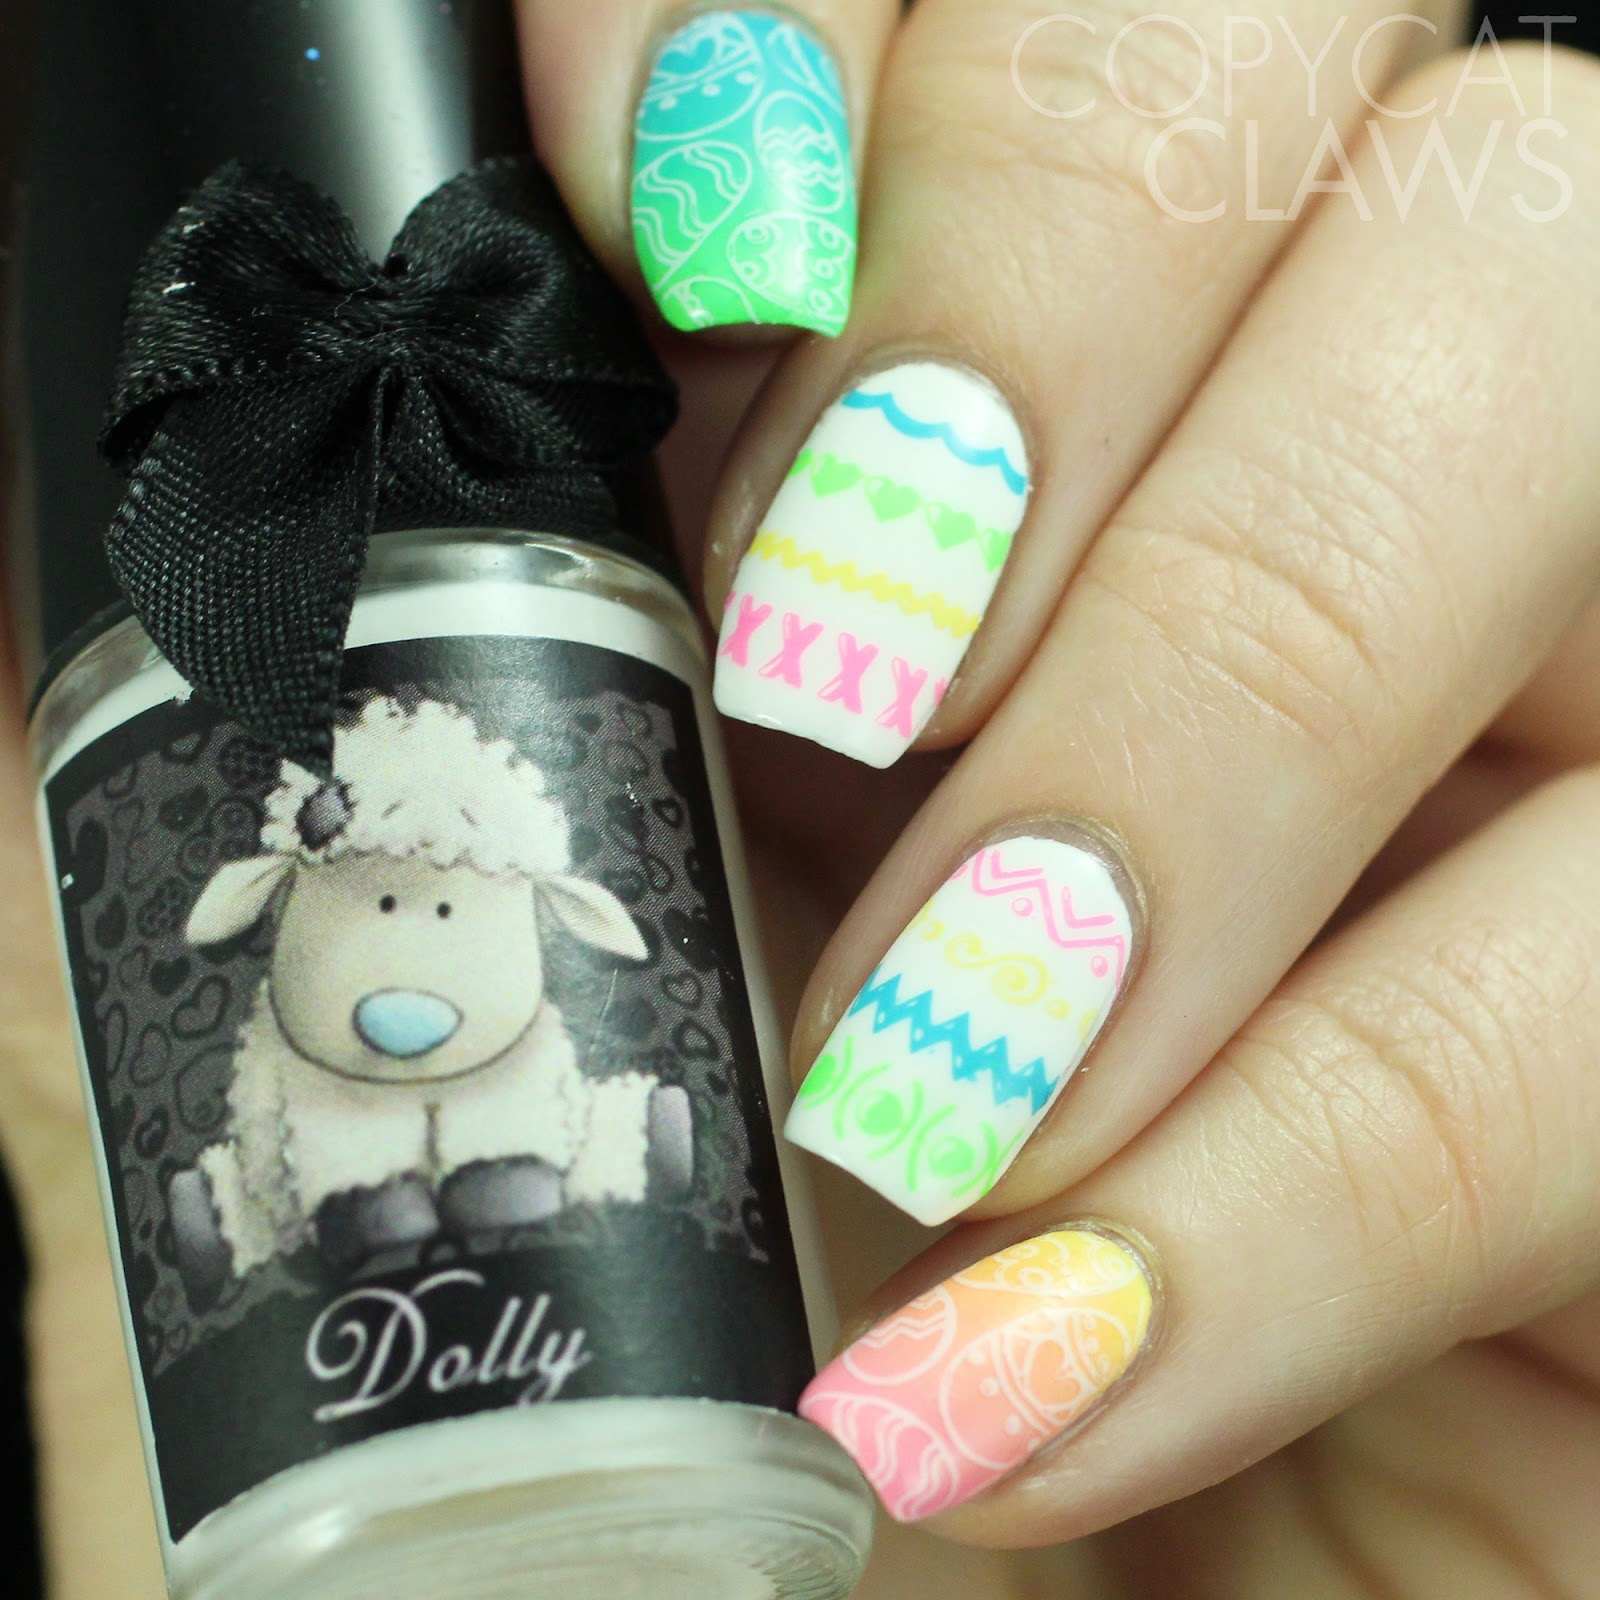 Copycat claws uberchic beauty welcome spring stamping plate review for my second mani i wanted to try those do it yourself easter egg designs i used esmaltes da kelly dolly as a base and stamped a variety of the lines solutioingenieria Images